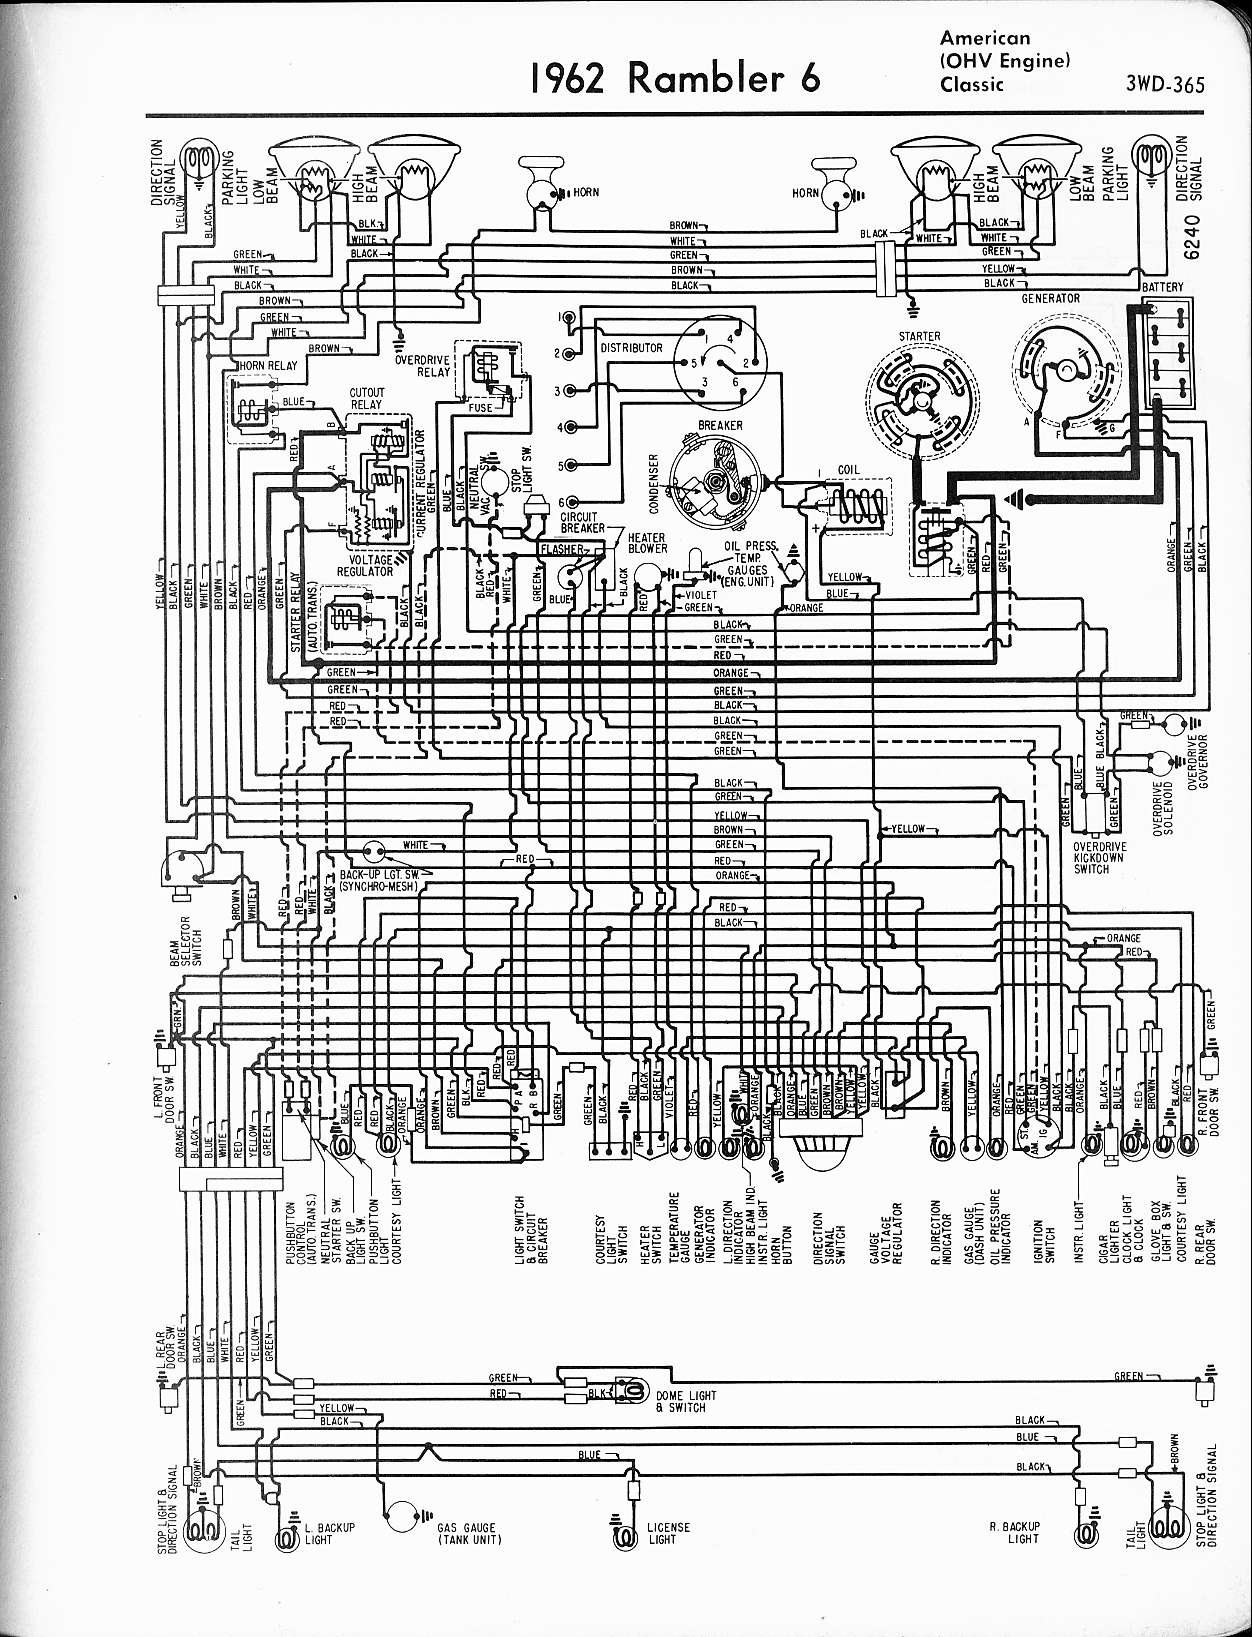 Rambler wiring diagrams - The Old Car Manual ProjectThe Old Car Manual Project